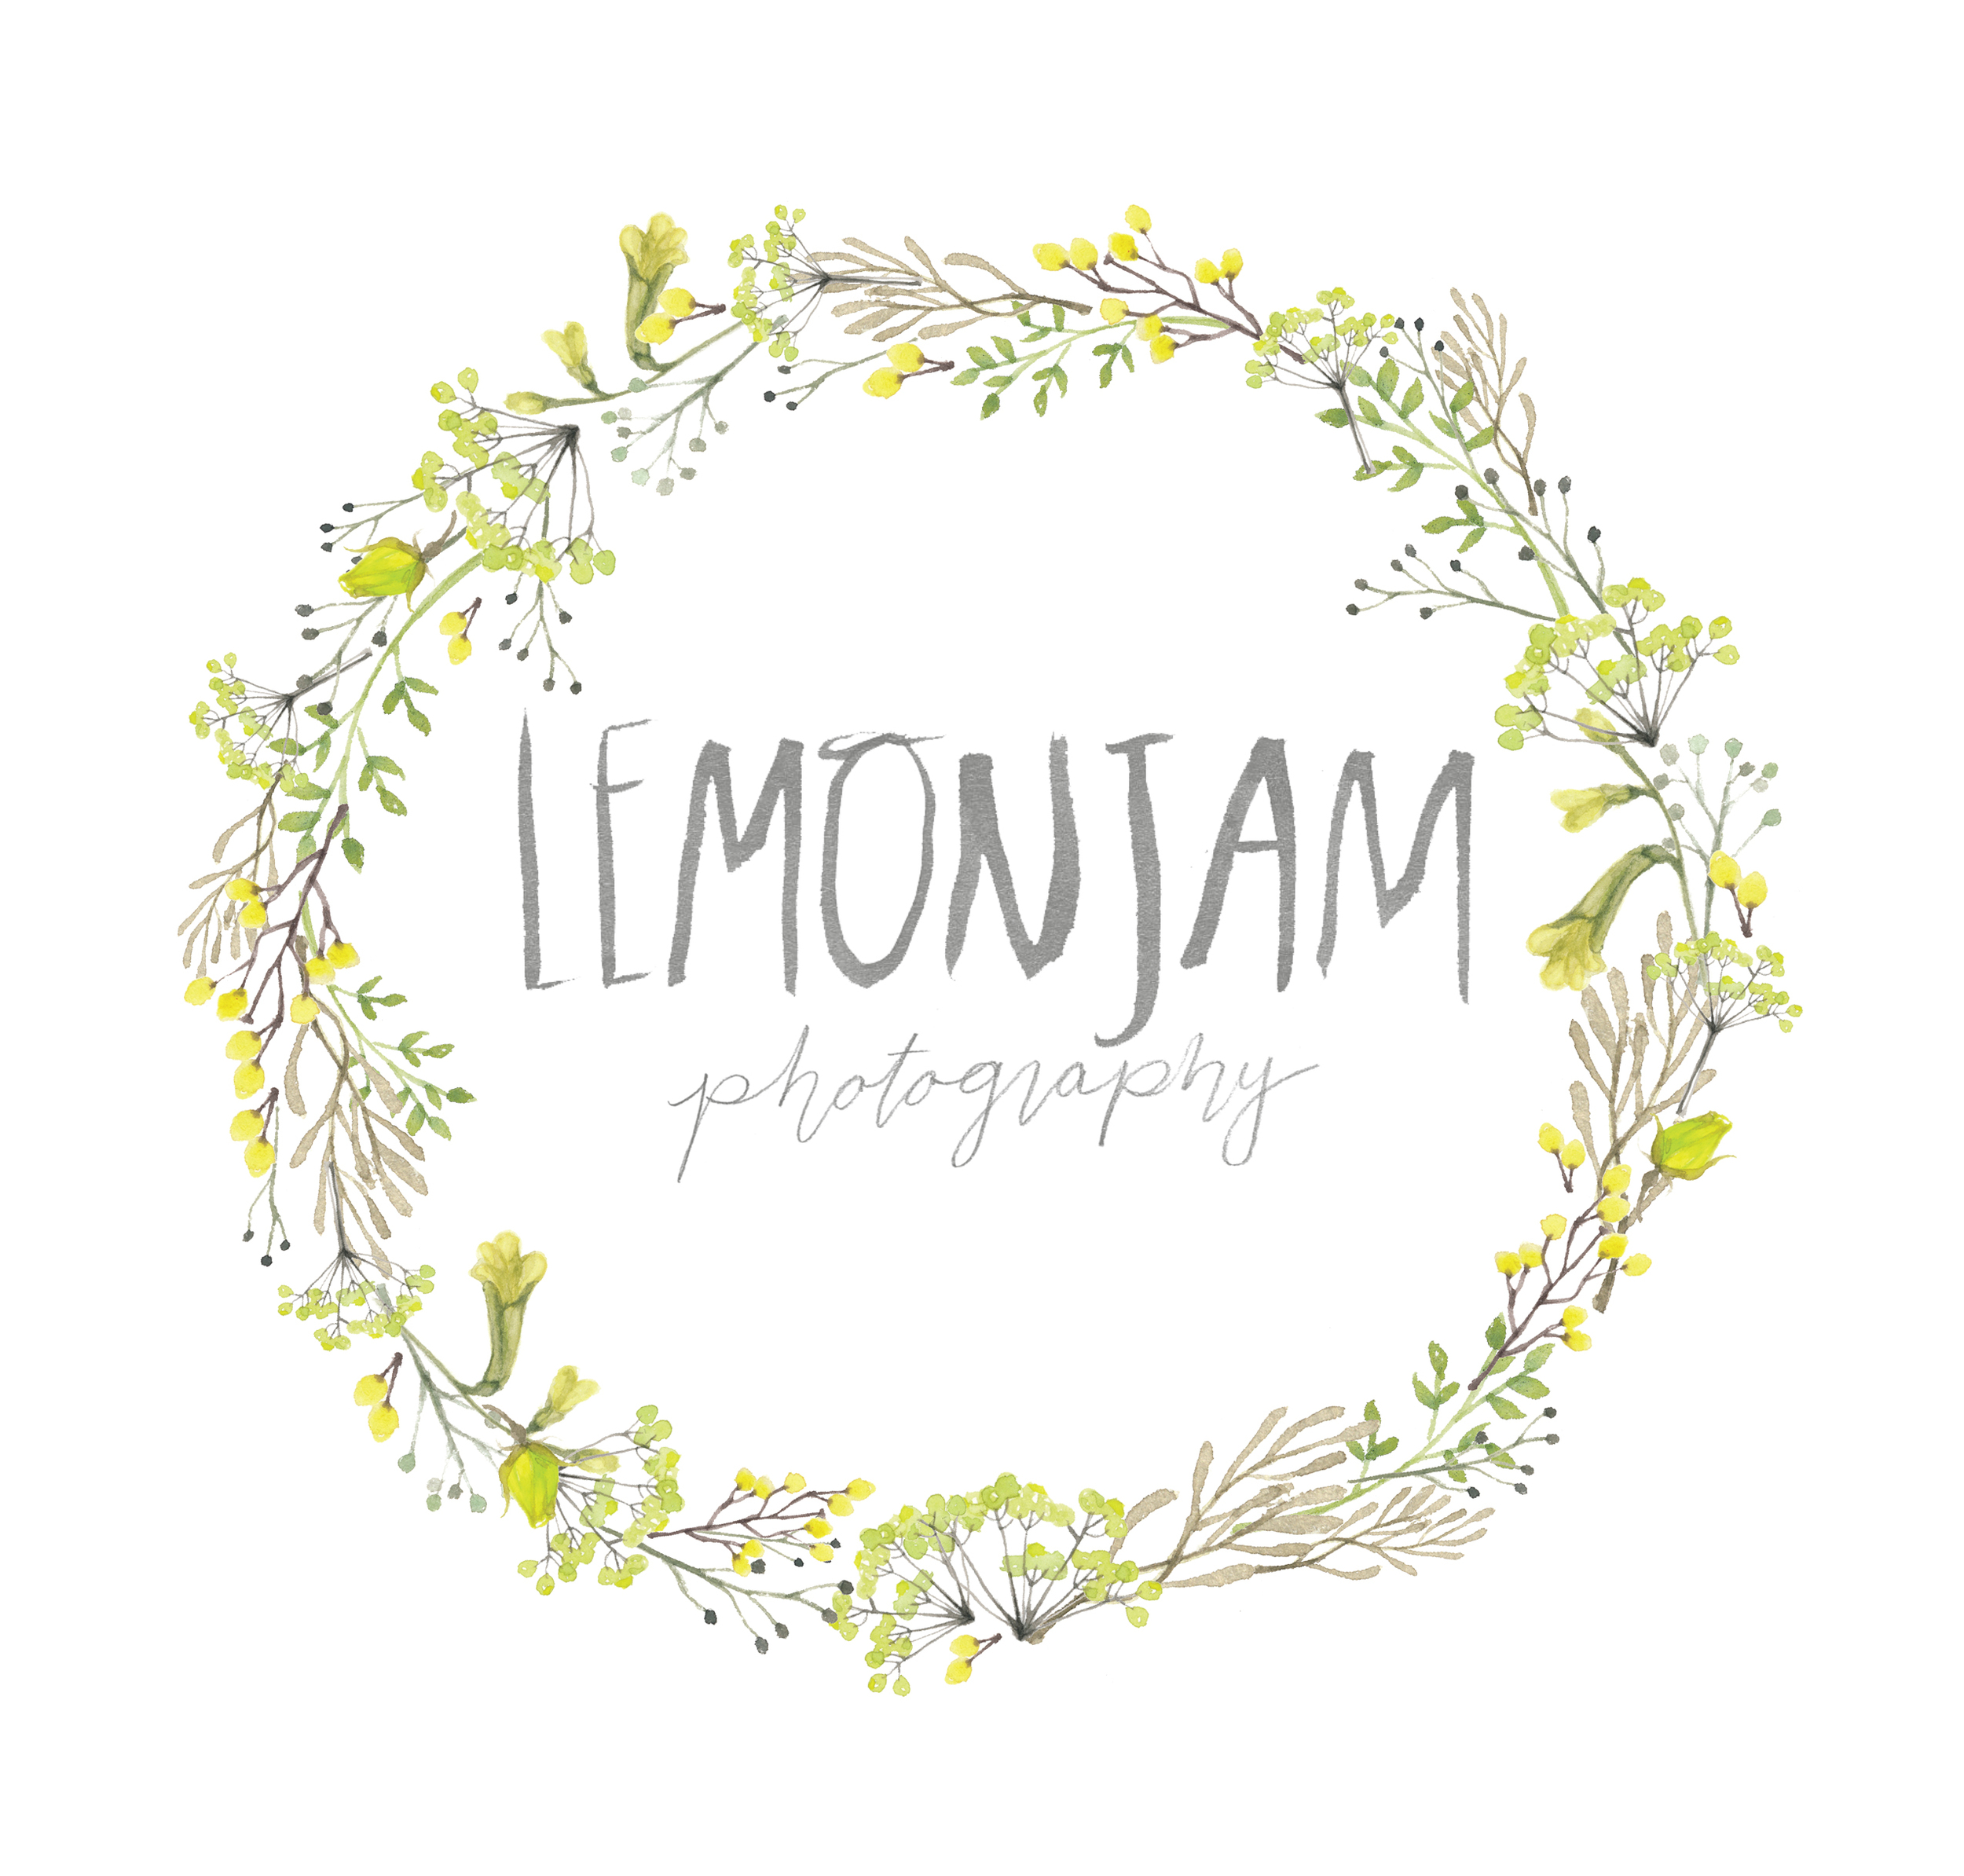 Lemonjam Photography